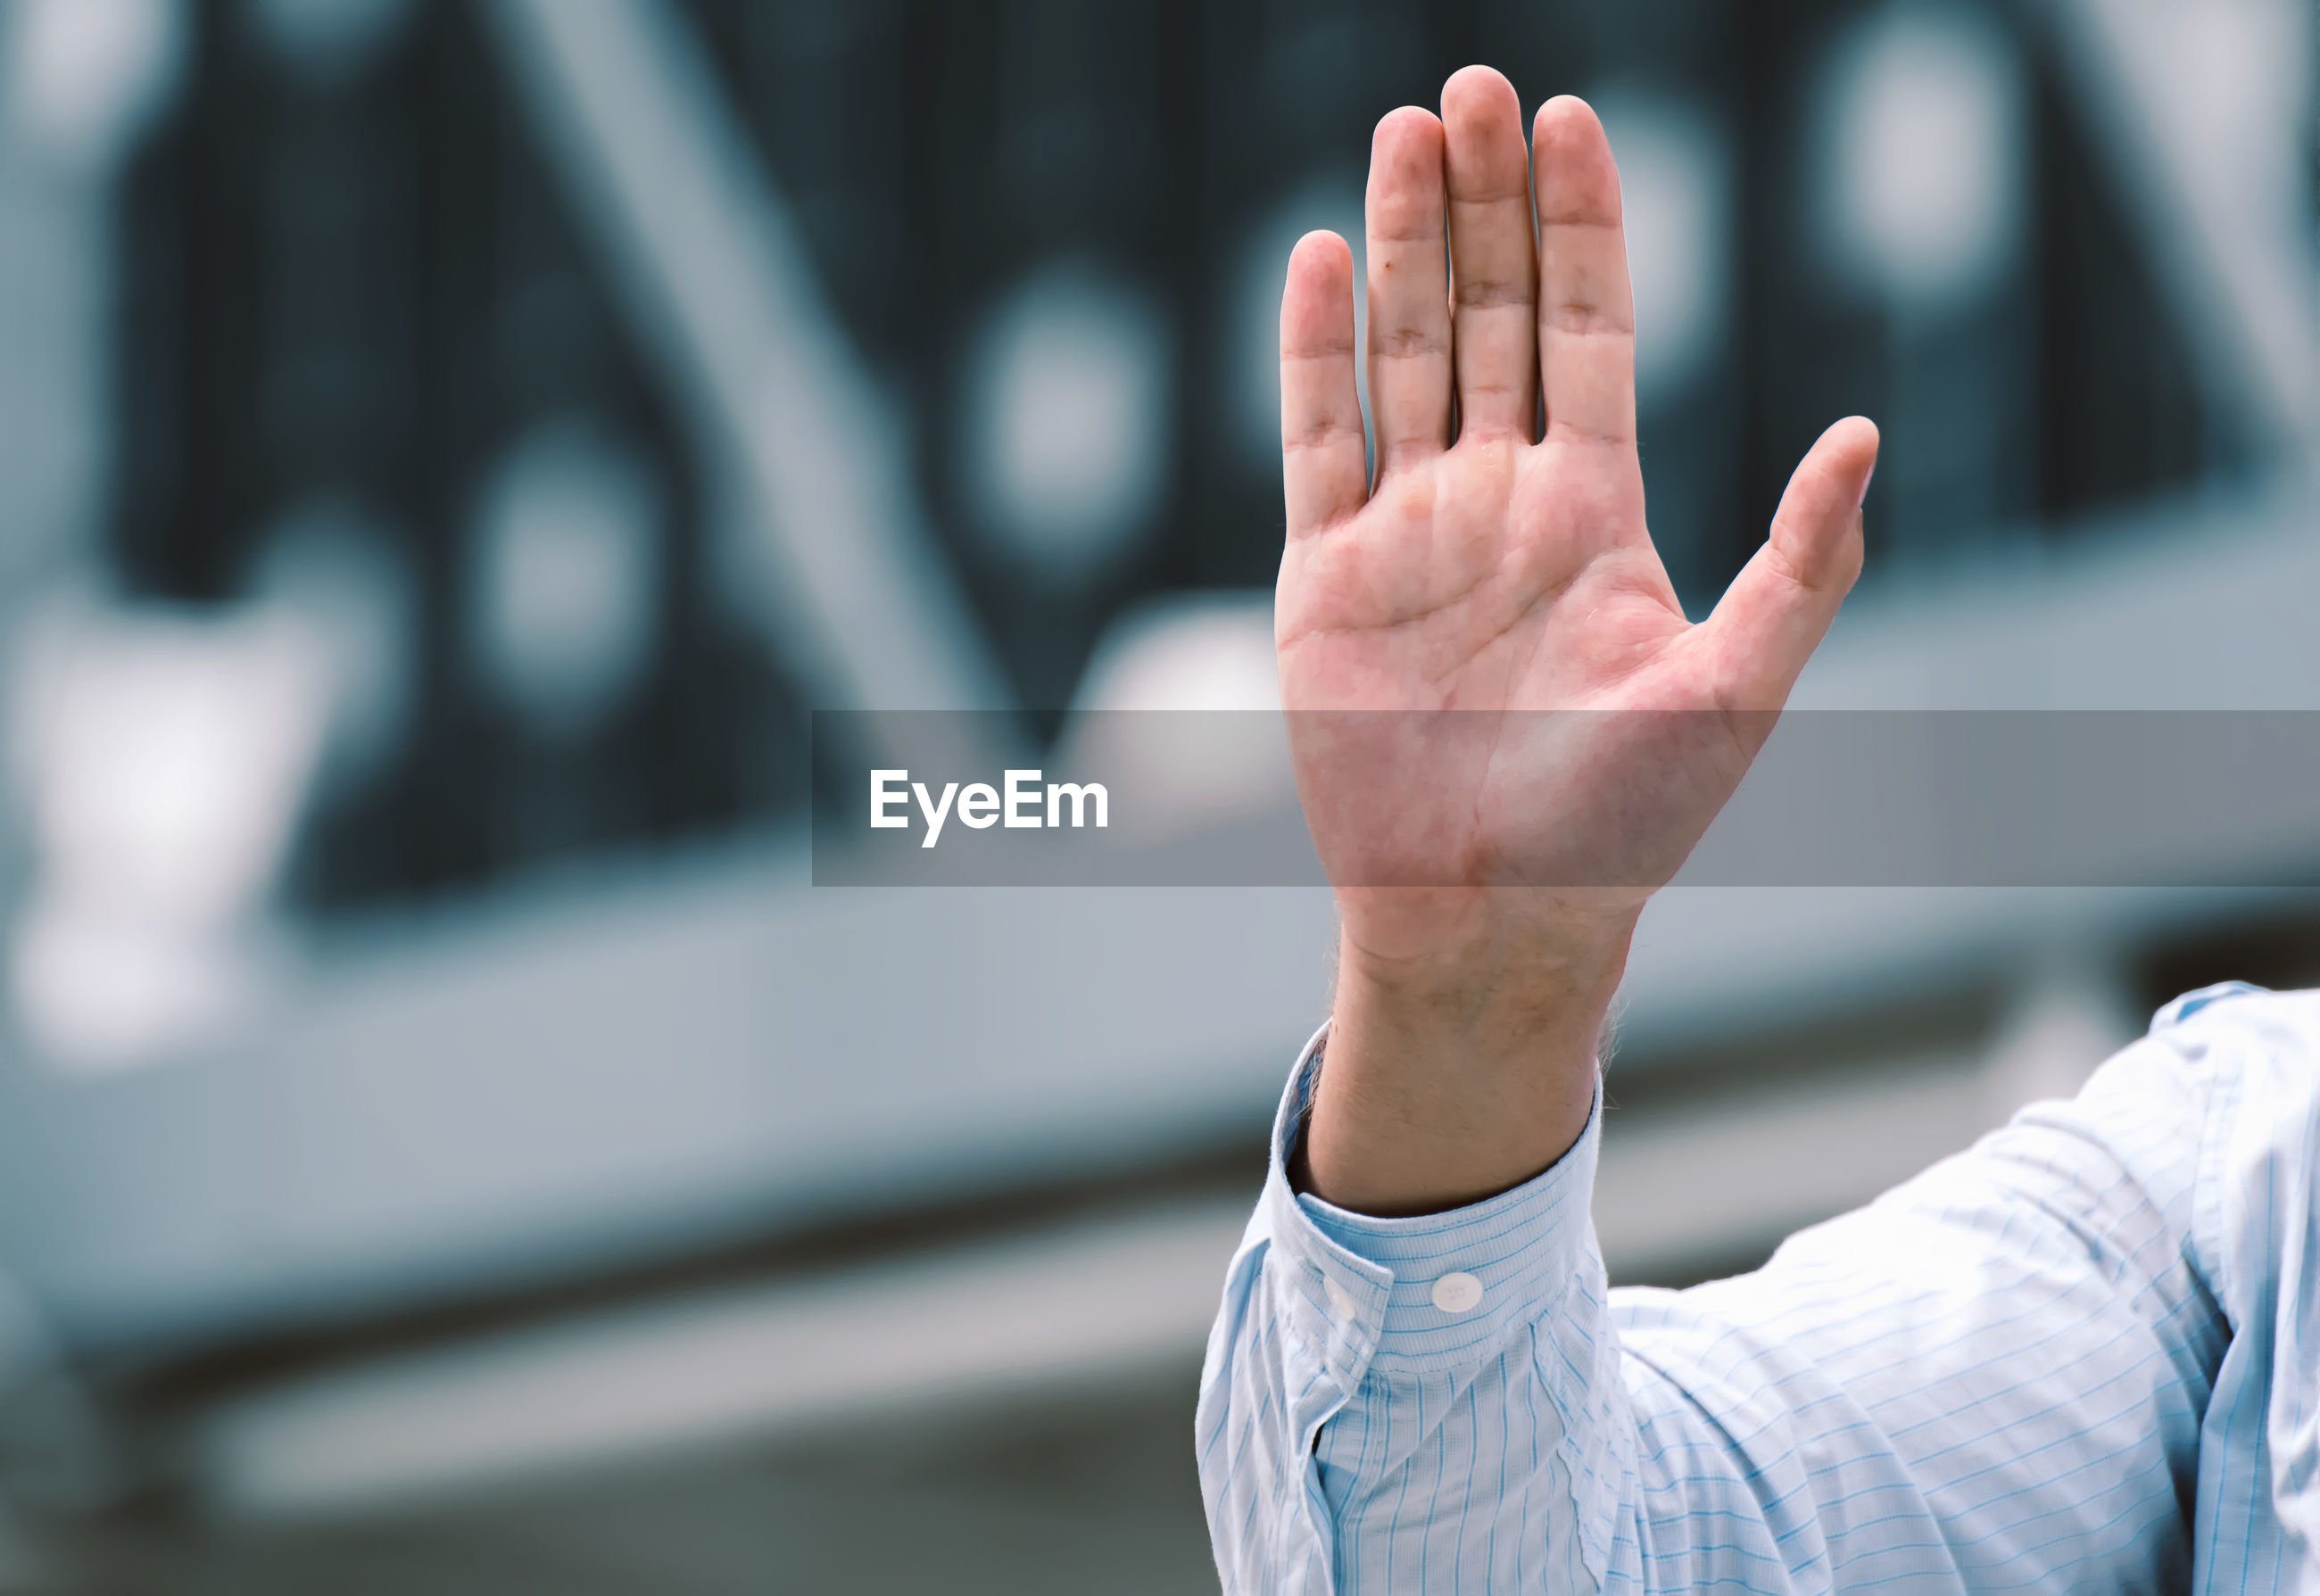 Cropped hand of man showing hand outdoors